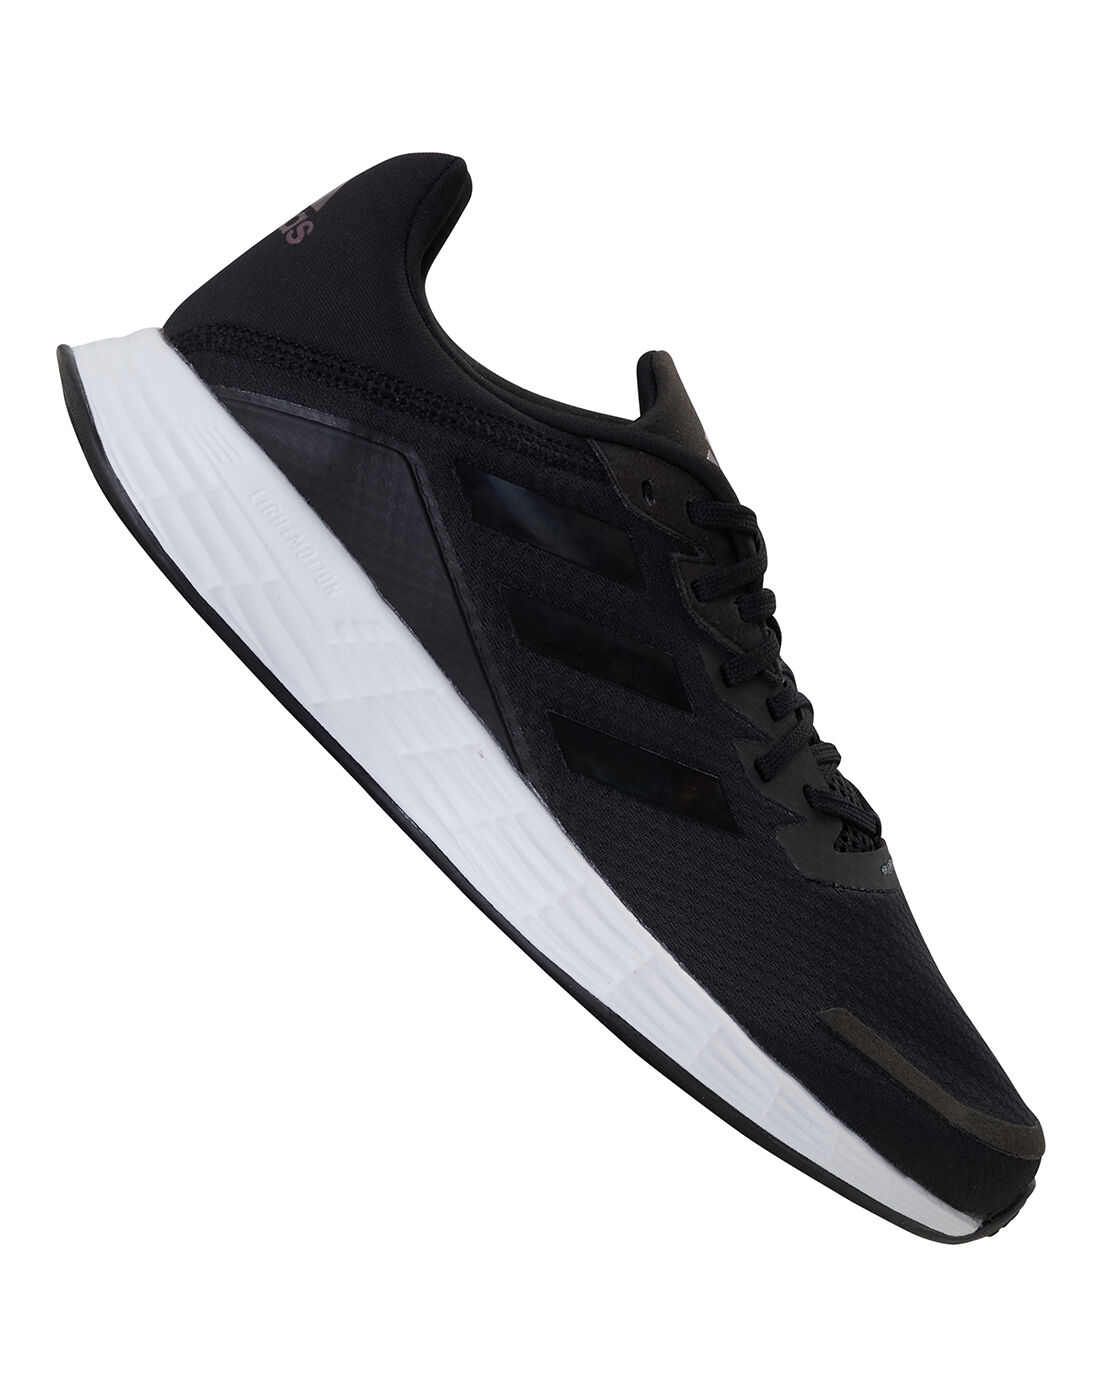 adidas mens running shoes size 11